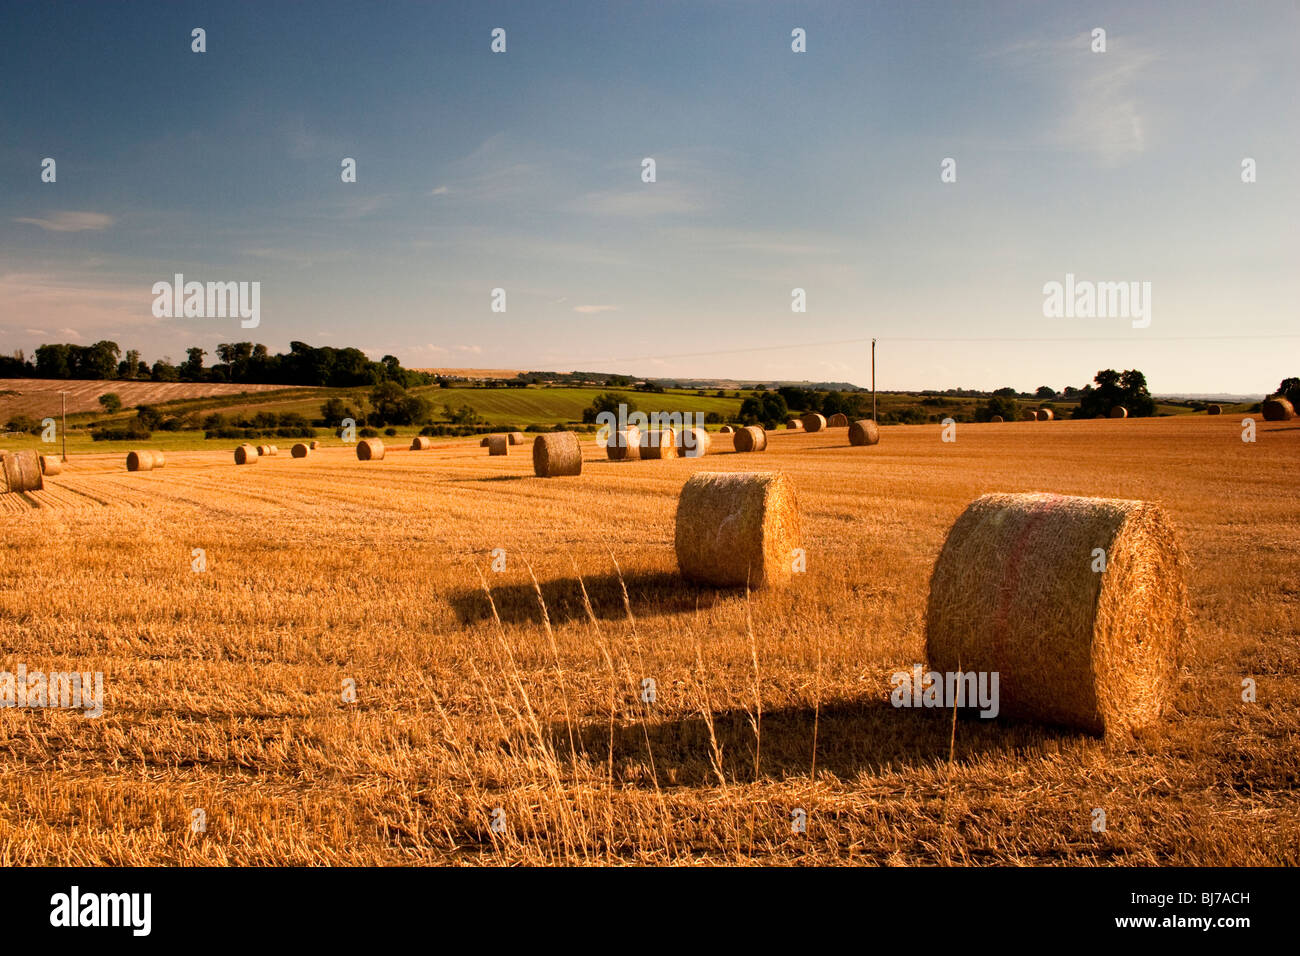 Hay bales in field in evening sunlight. - Stock Image